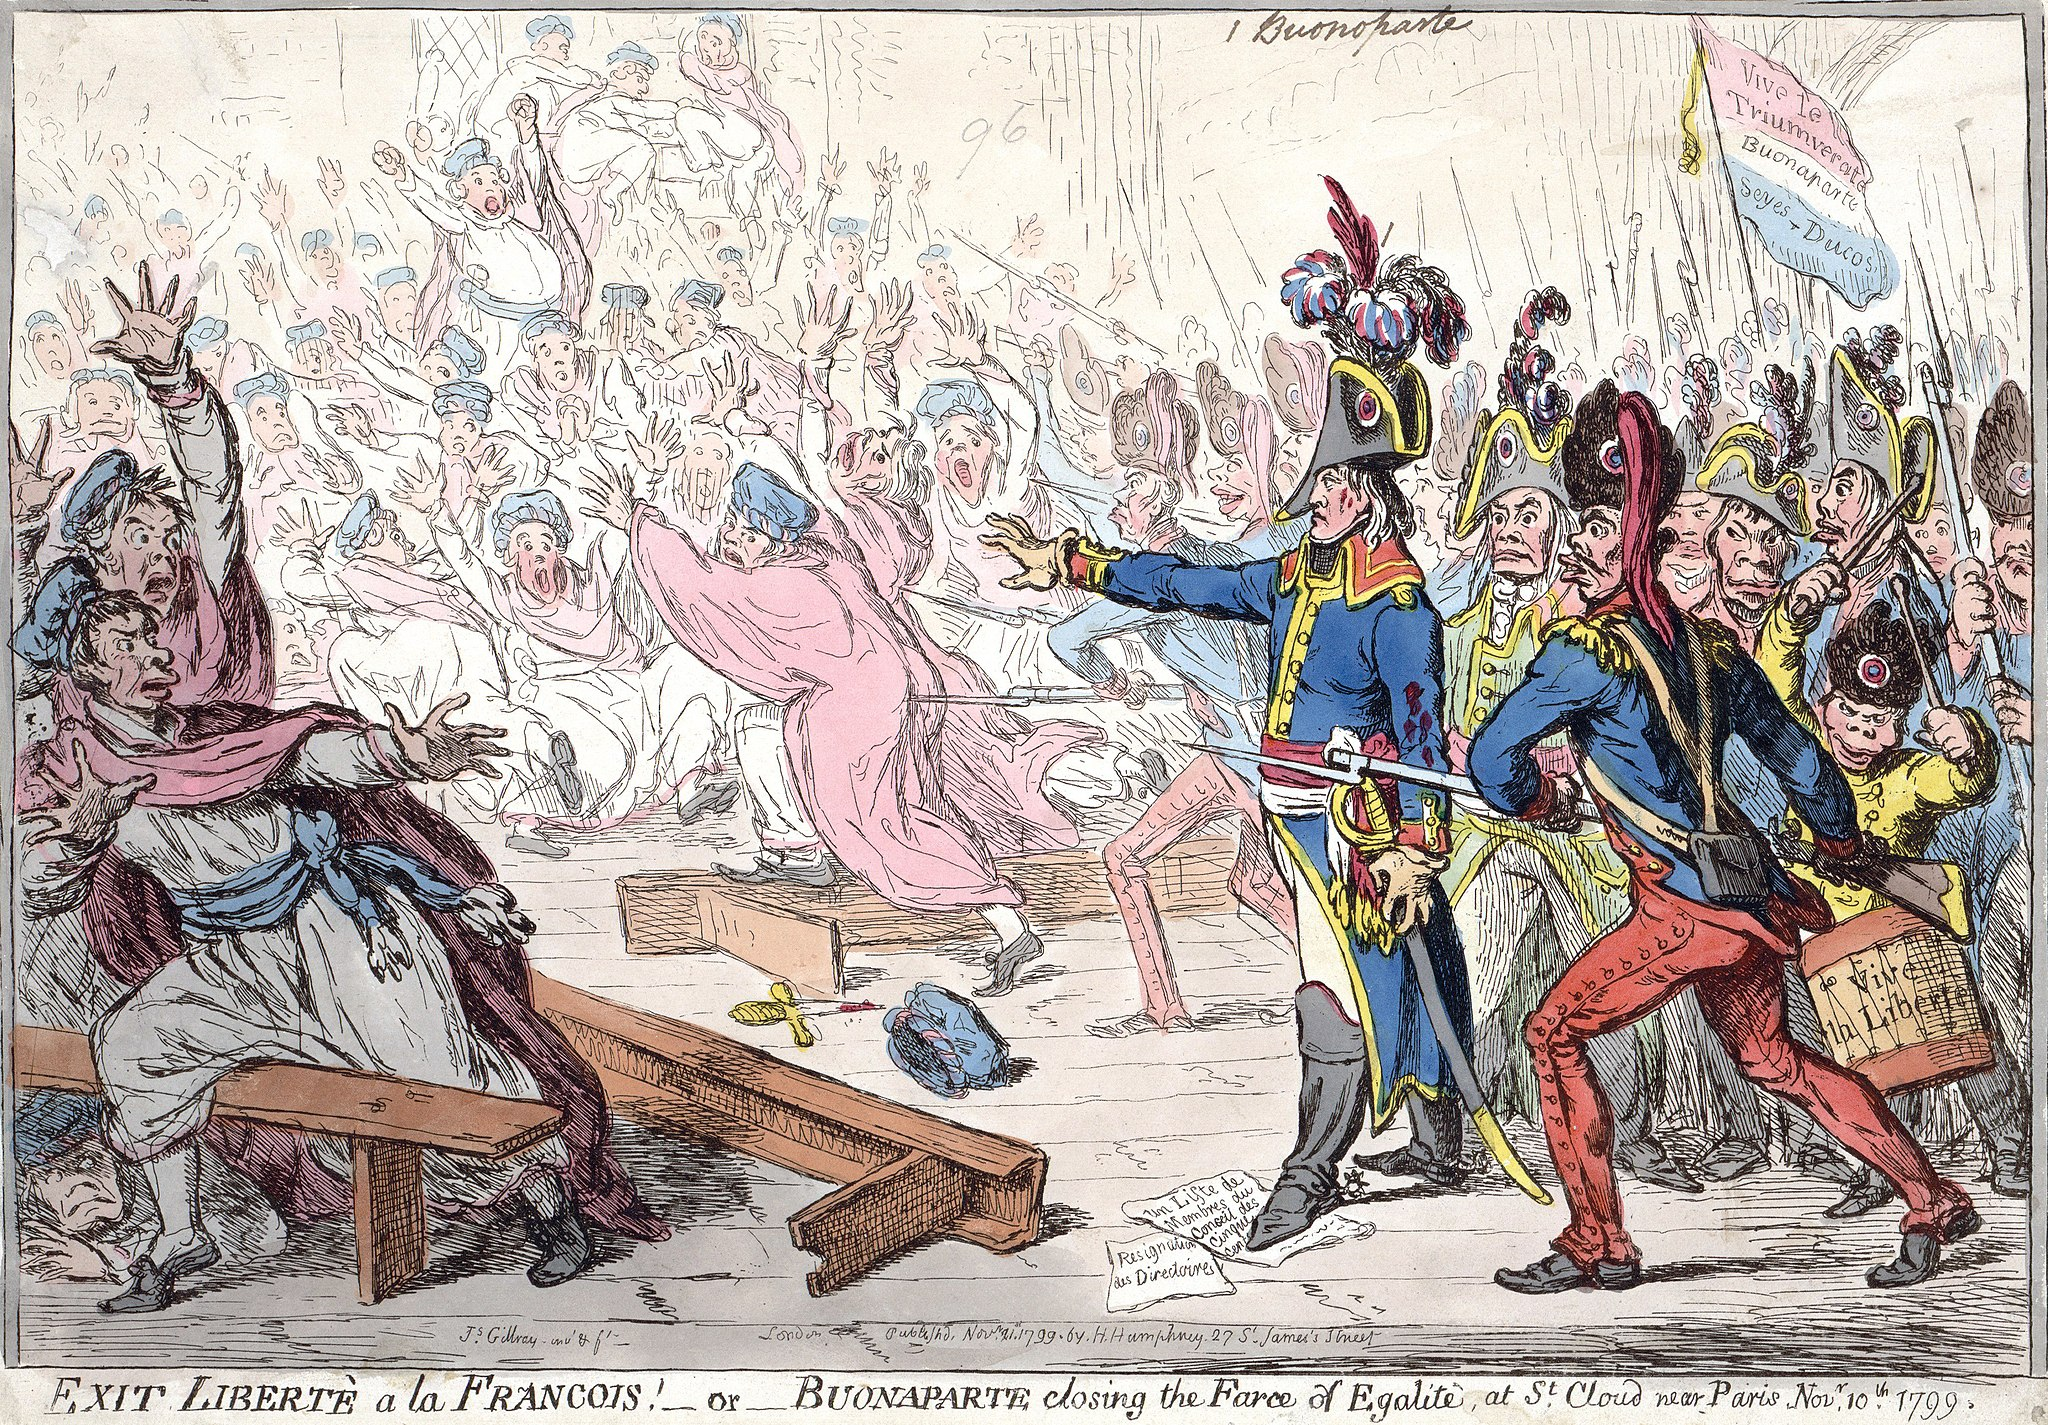 James Gillray's 1799 caricature of Napoleon and army, in military garb, pointing their weapons as they advance on fleeing civilians.